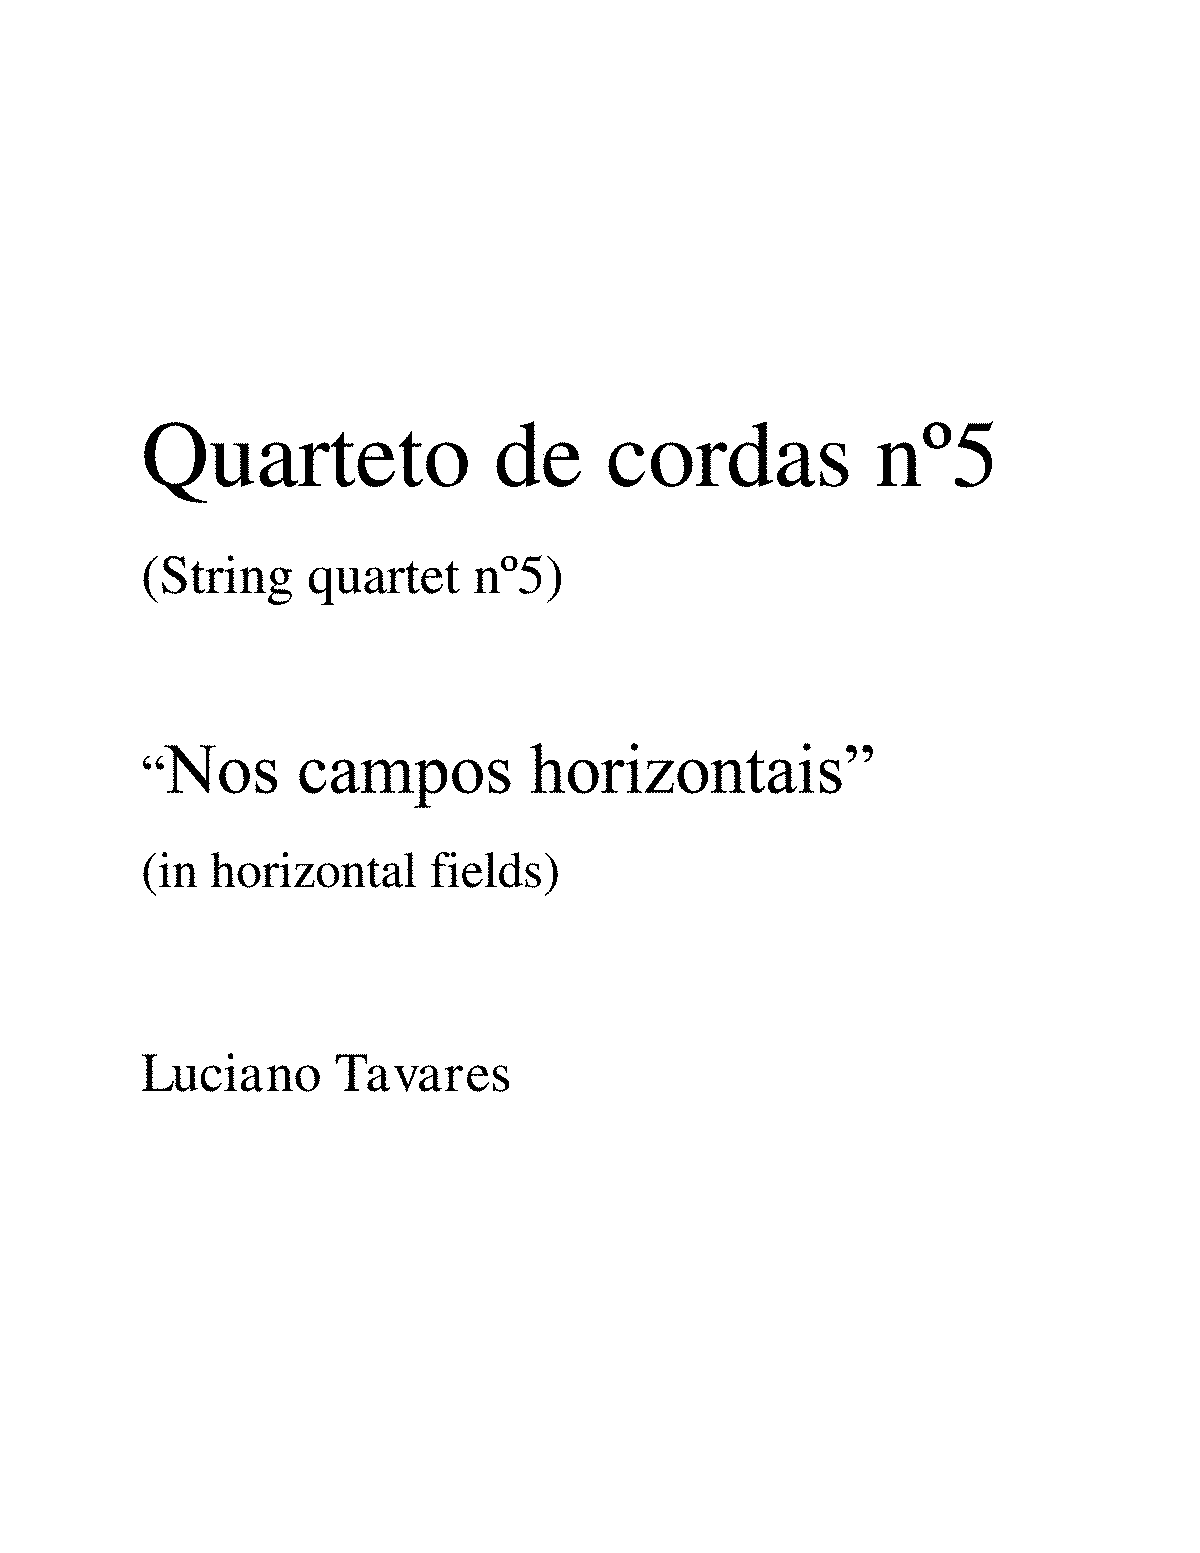 PMLP633687-Quarteto 5 final.pdf